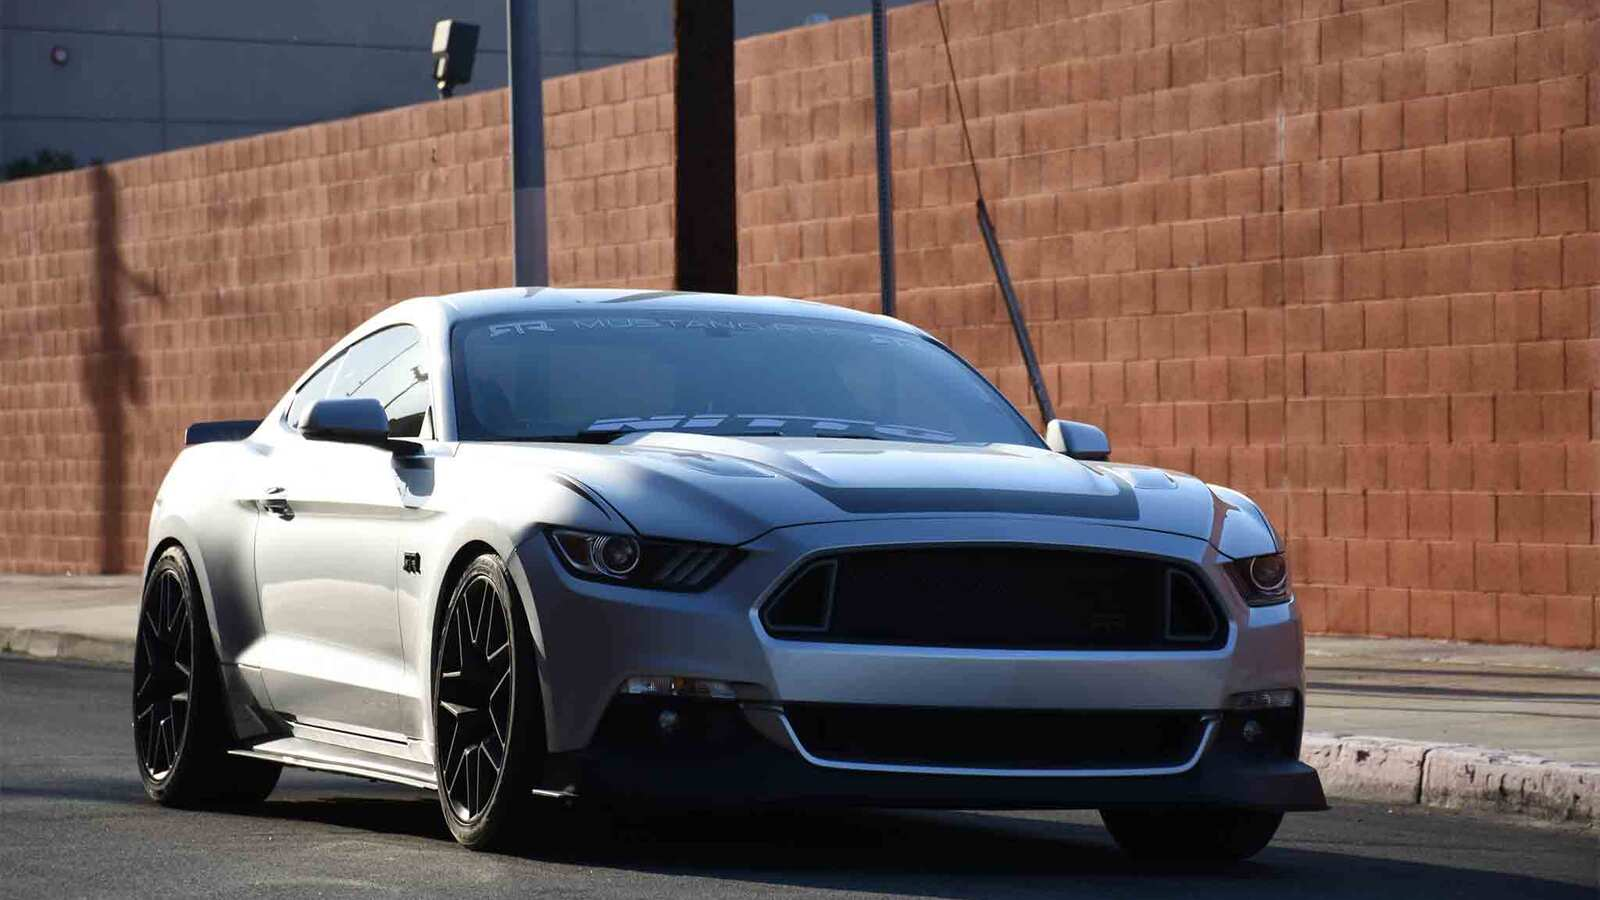 1600x900 2017 Ford Mustang Rtr 1600x900 Resolution Hd 4k